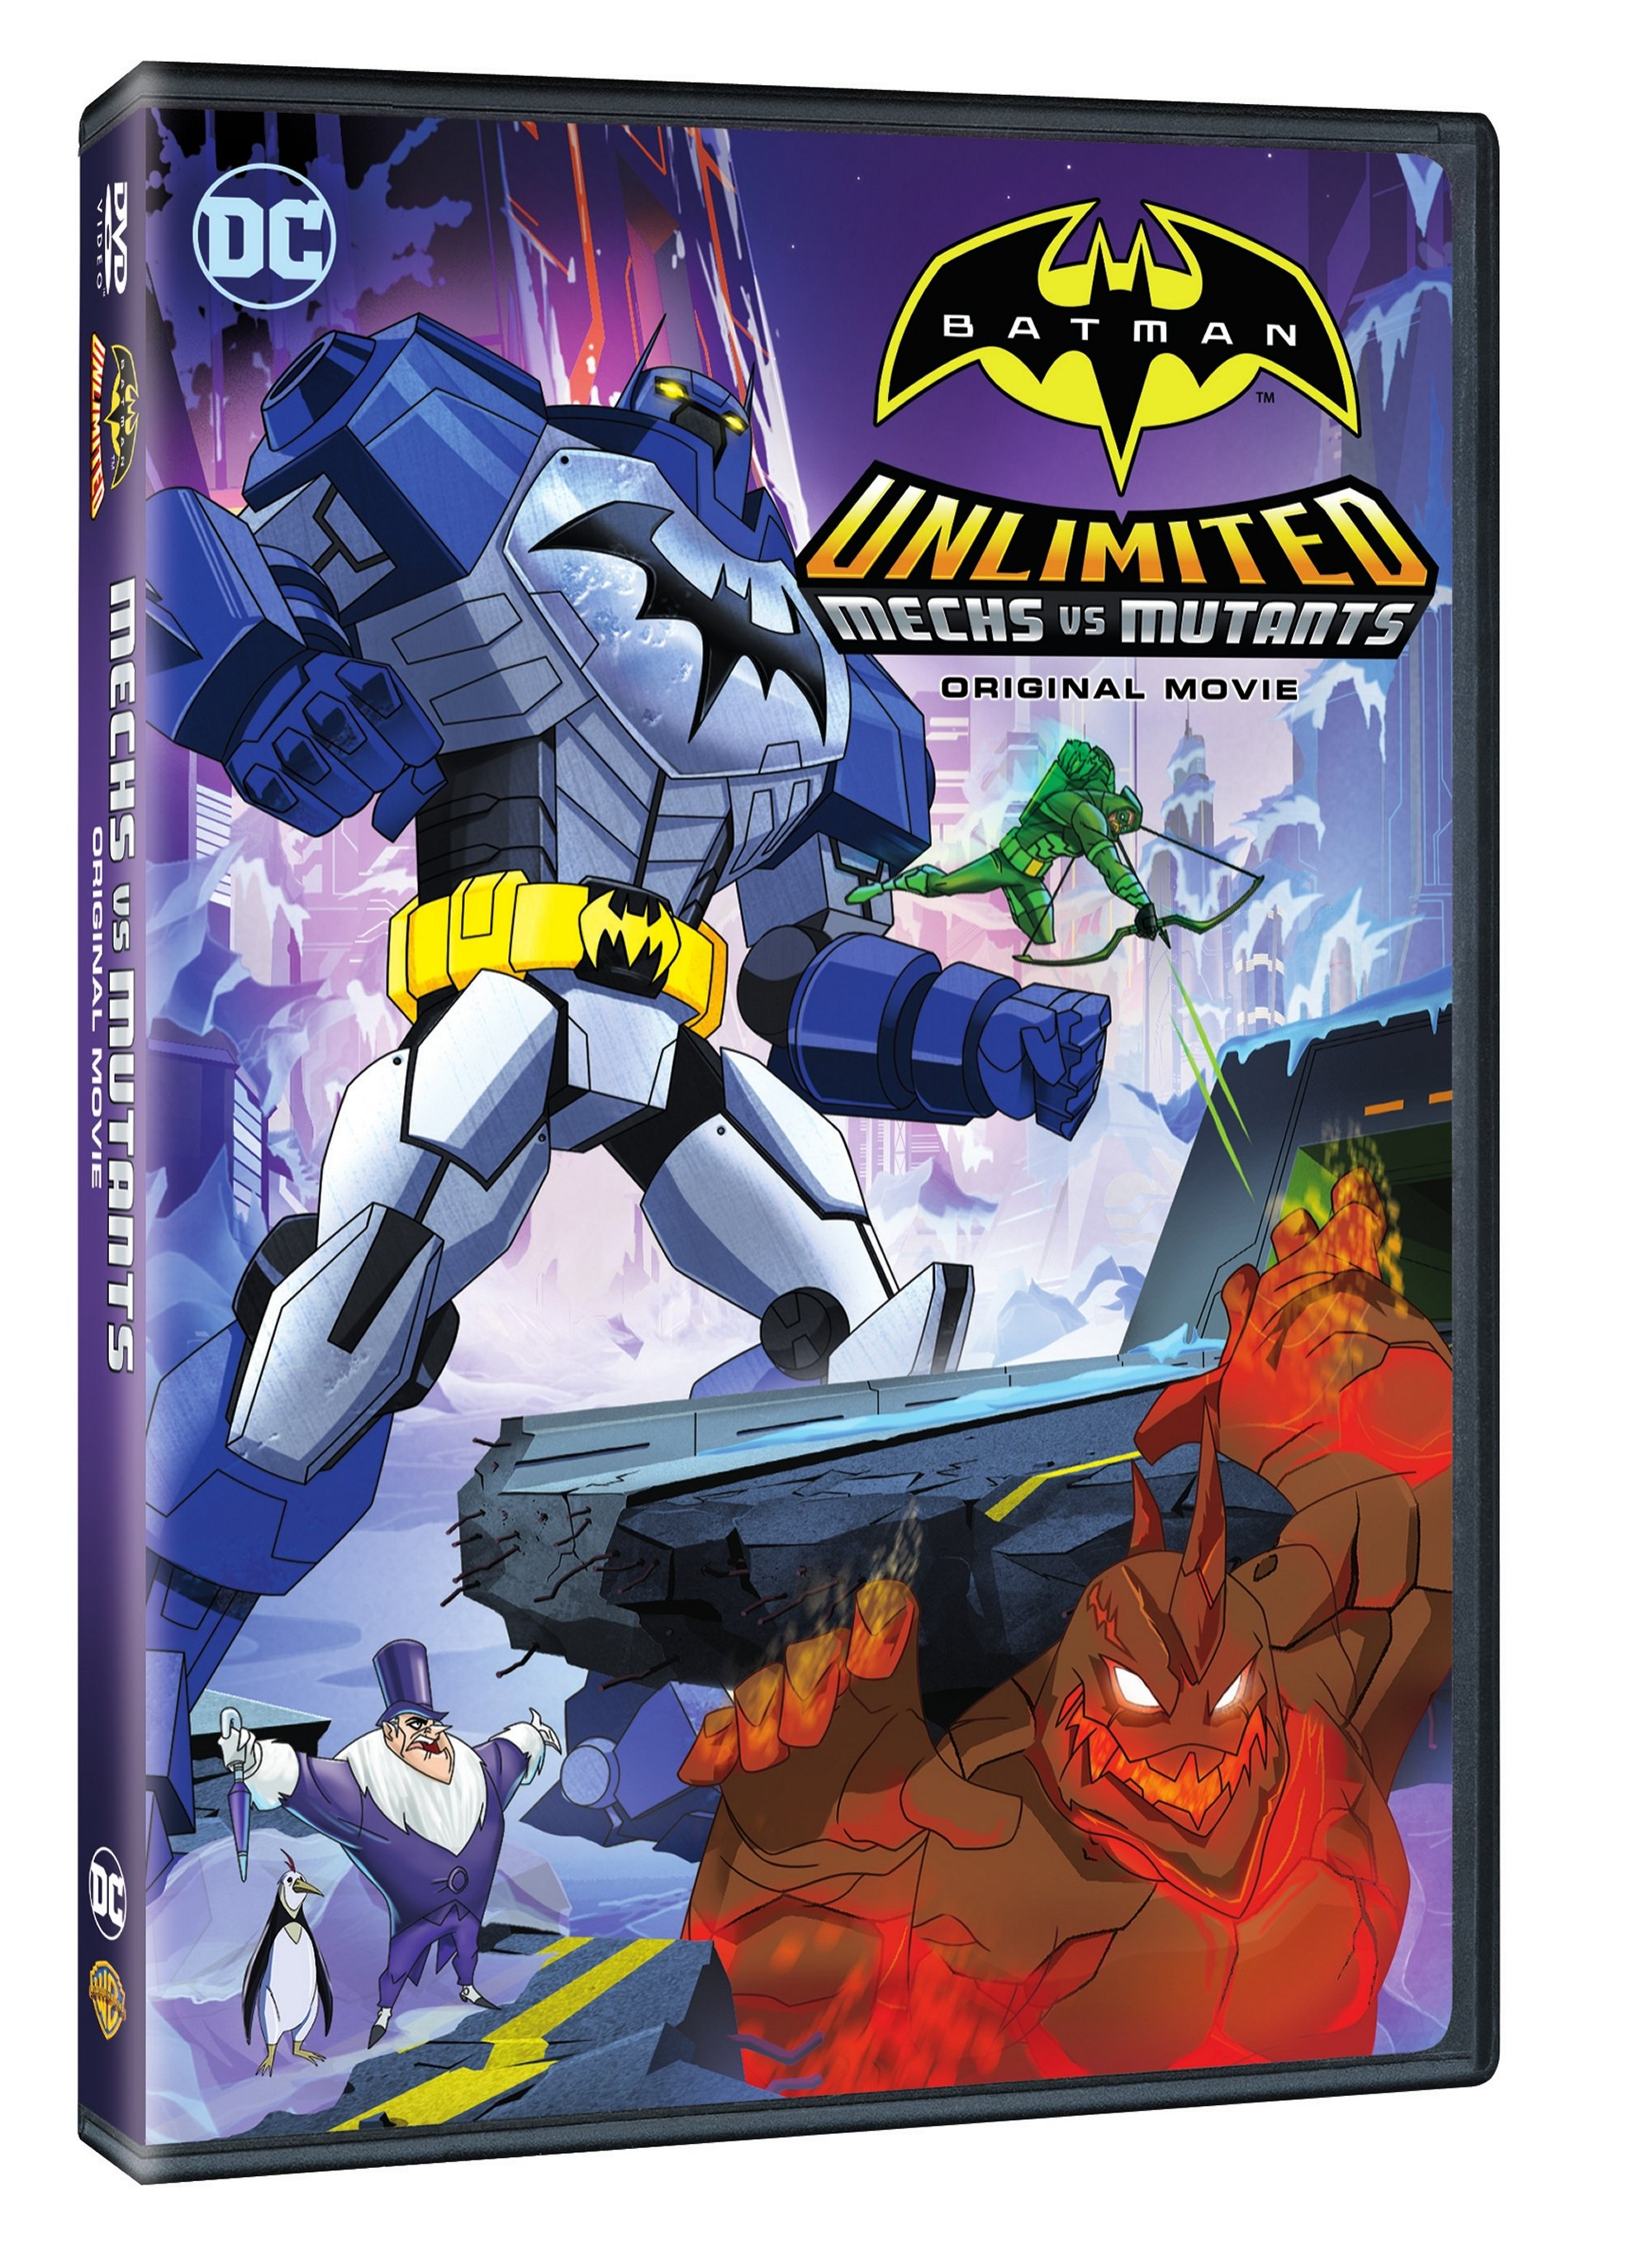 Batman_Unlimited_Mechs_vs_Mutants_3D